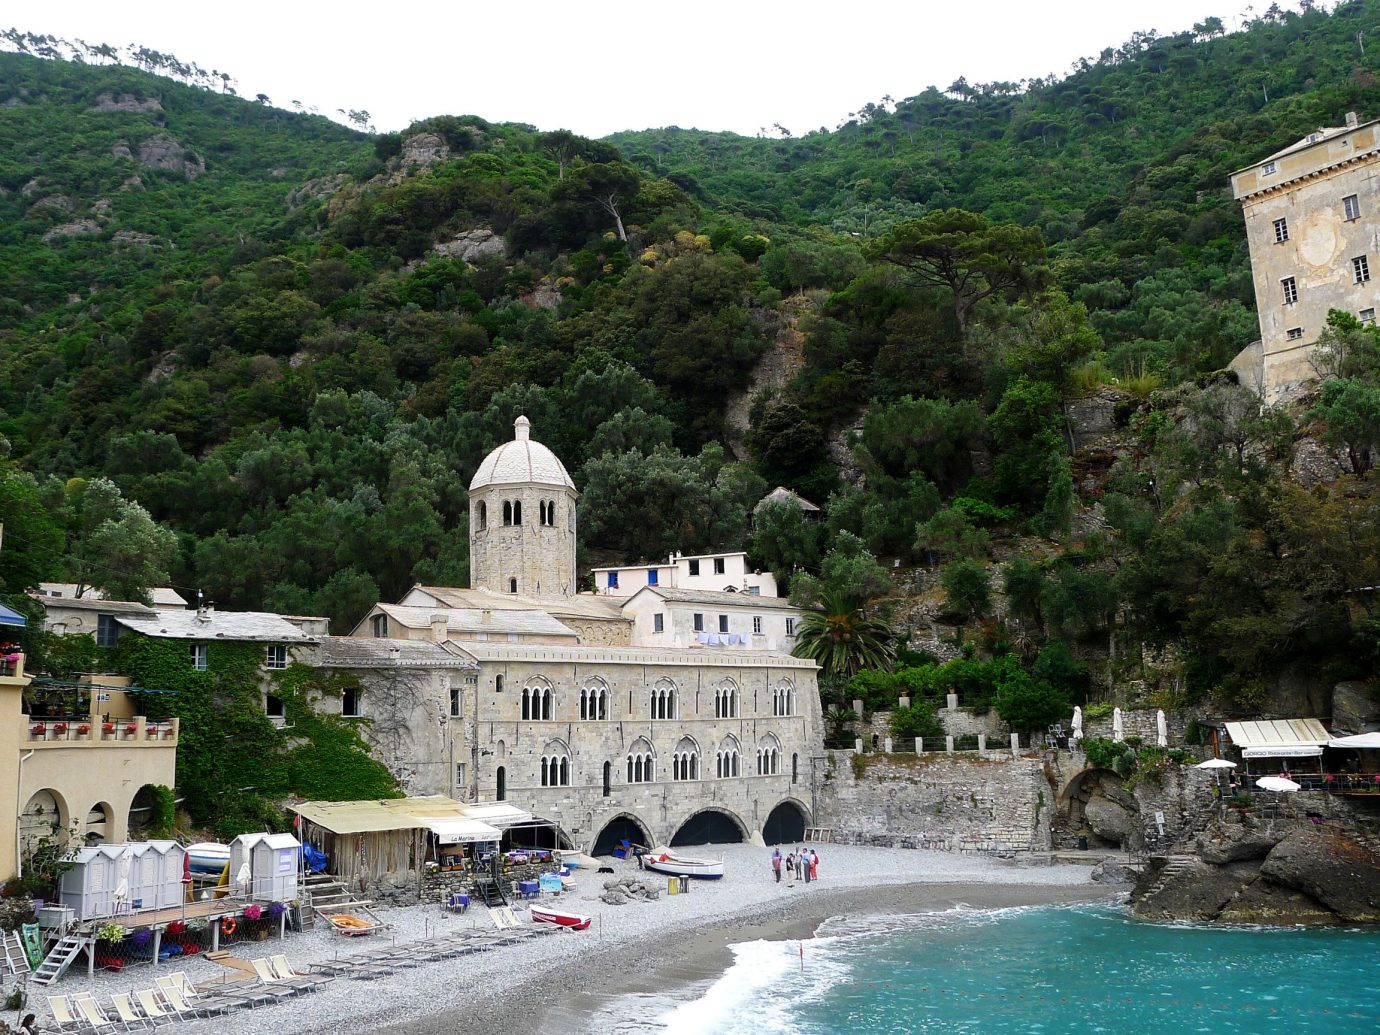 Italy Trip Ideas tree Coast hill station tourism water City River sky mountain Village building bay